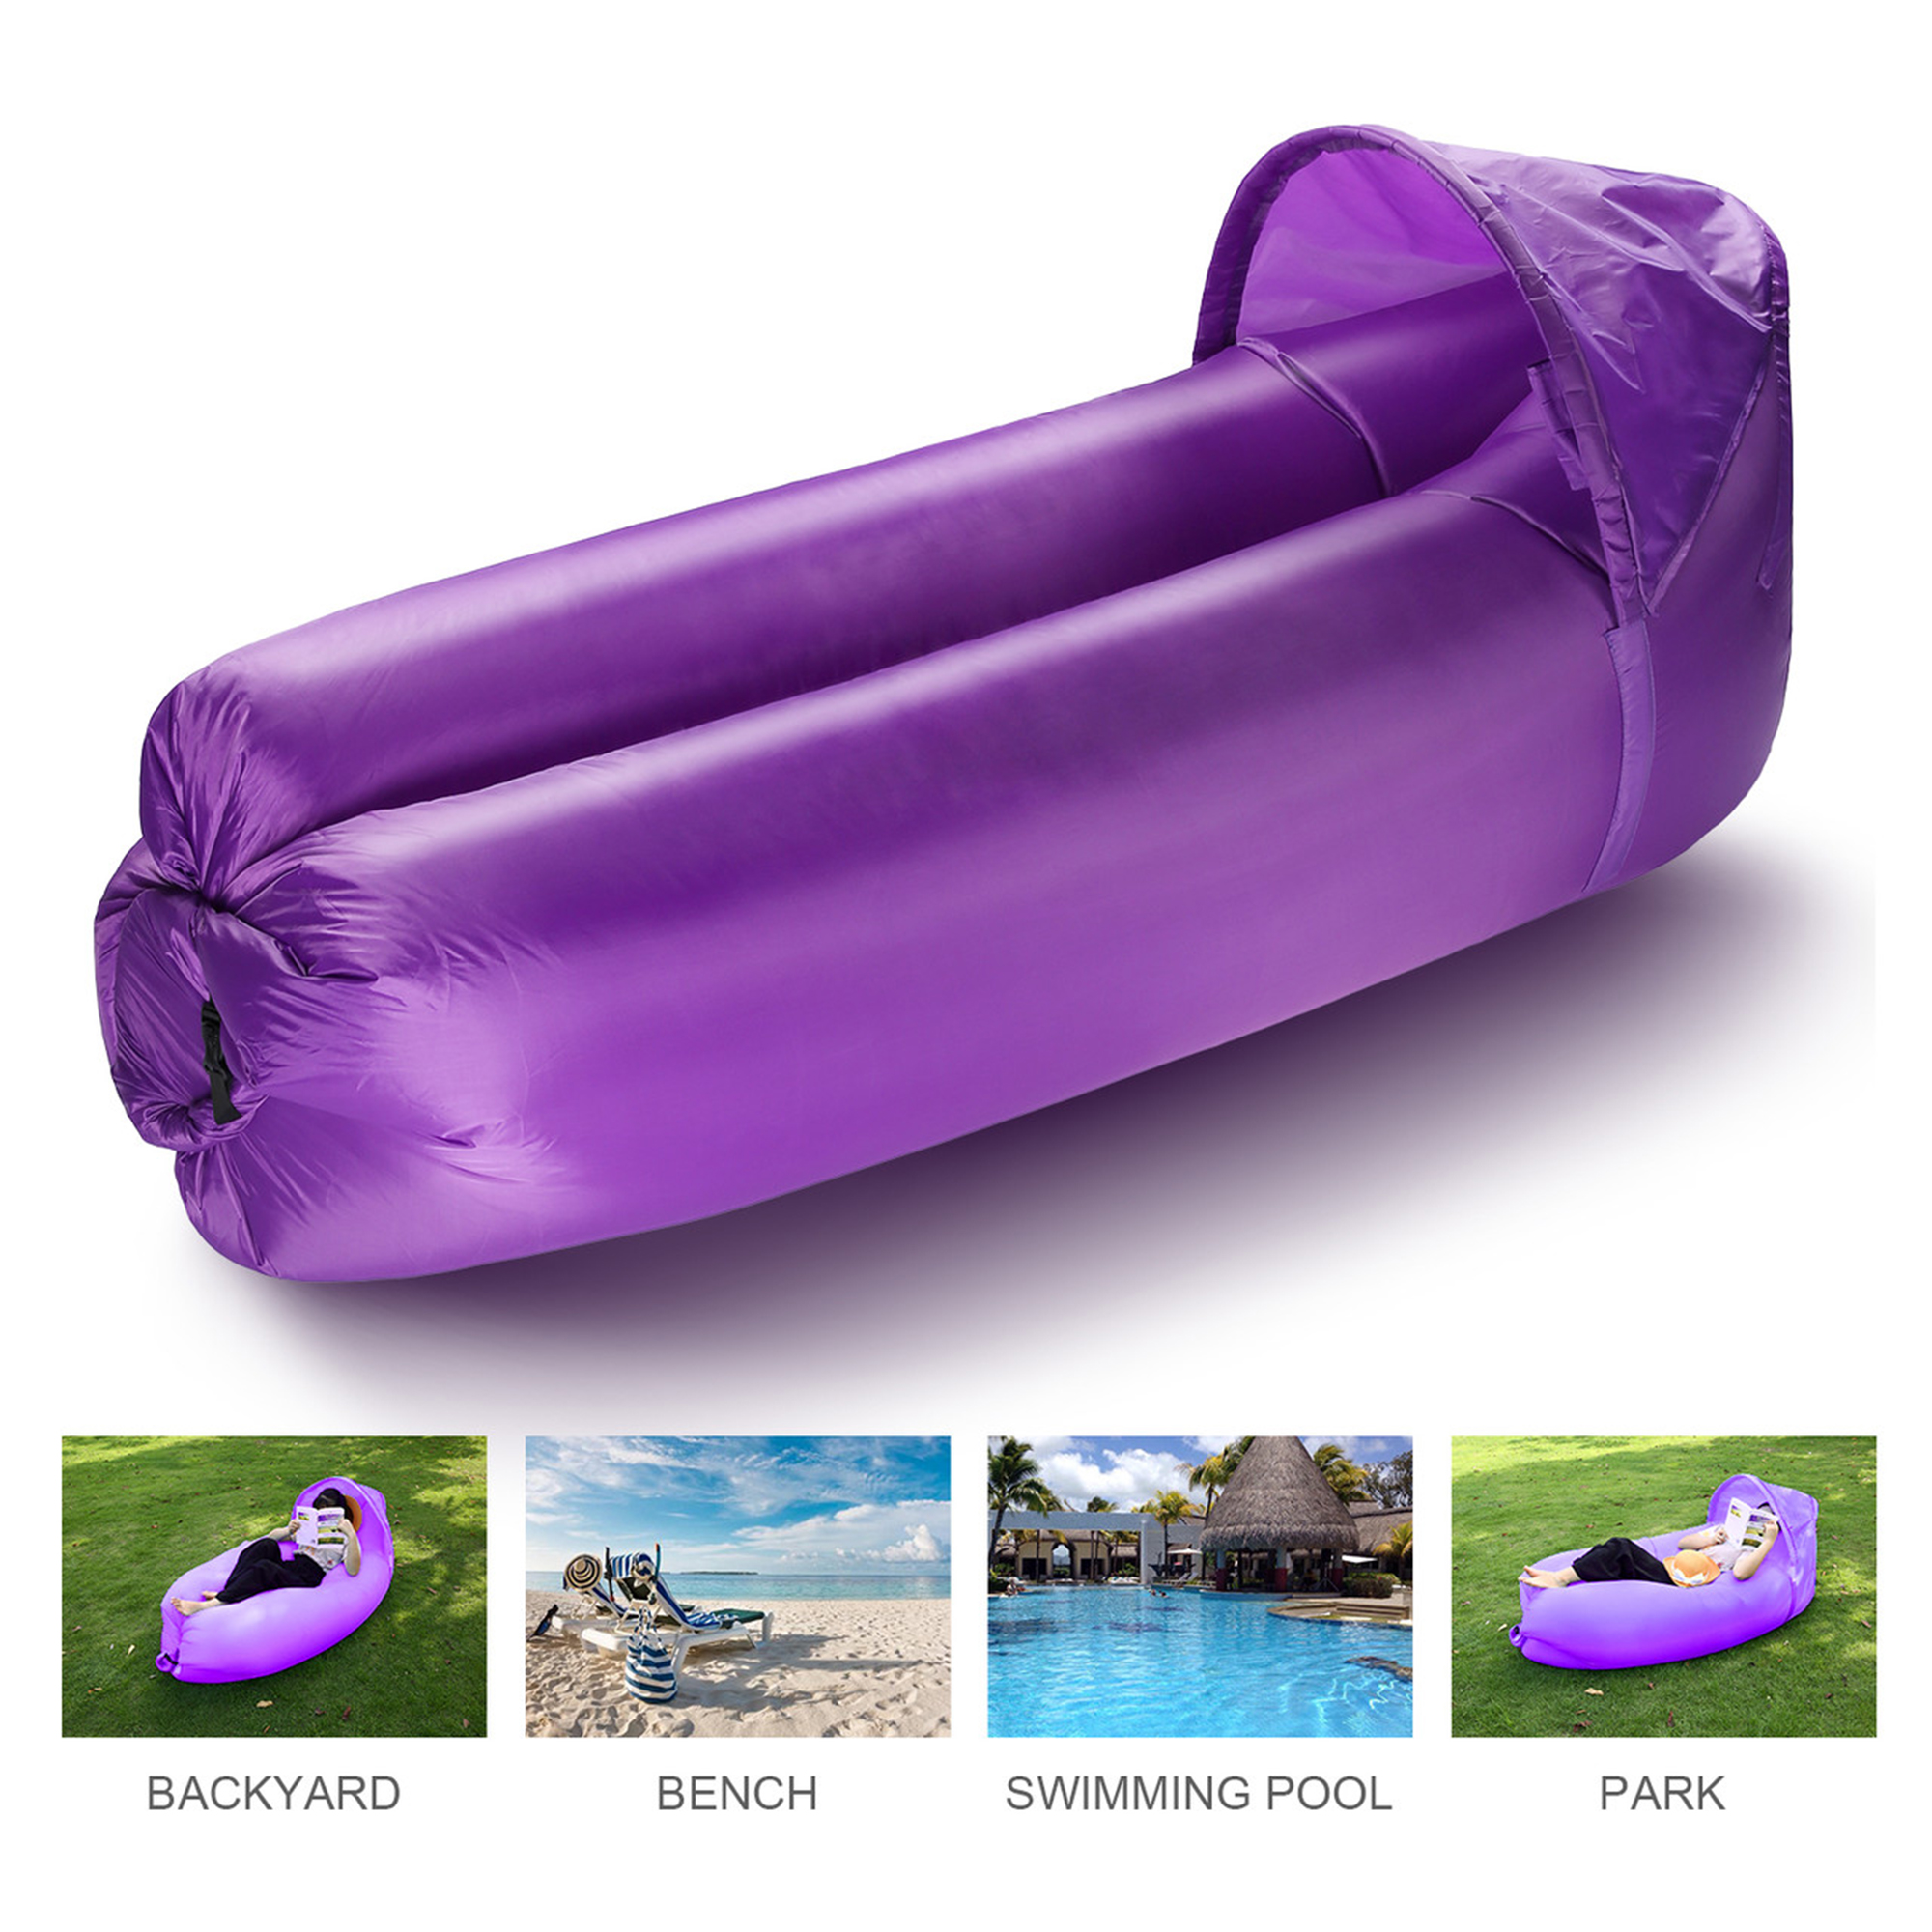 isYoung Outdoor Camping Inflatable Lounger Sofa Sleeping Bag Beach Hangout Lazy Air Sofa Portable Bed